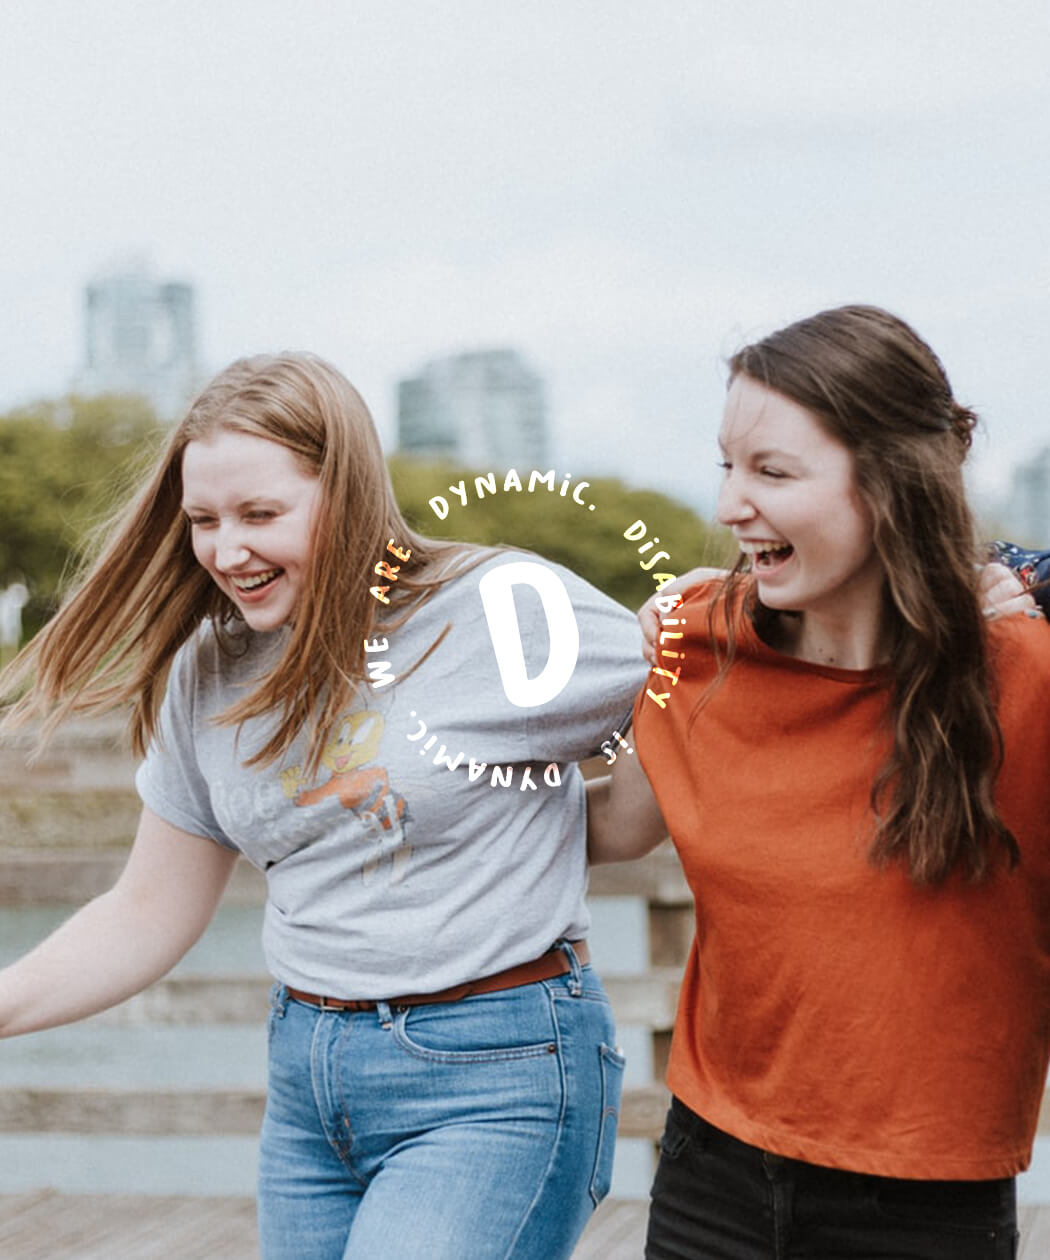 Brand image of happy people with icon overlay